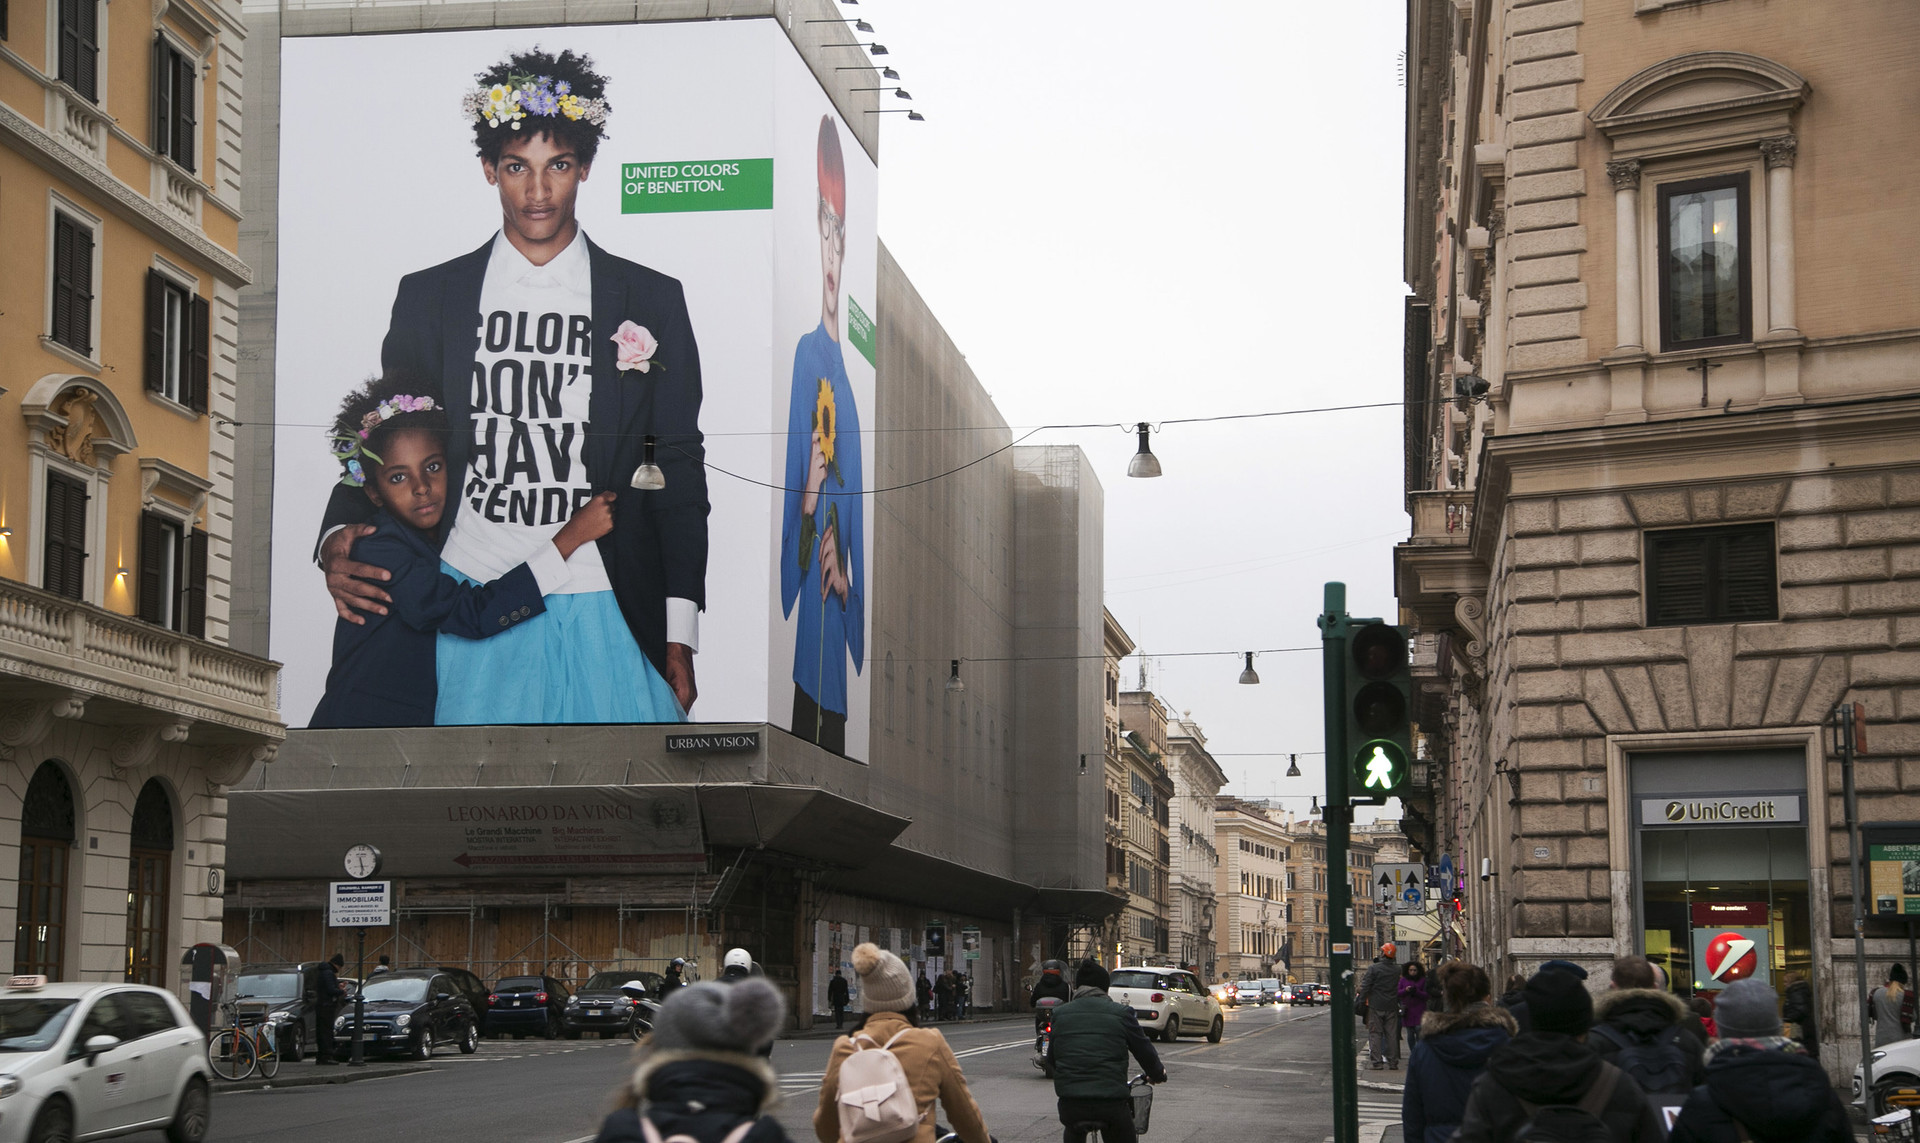 United colors of benetton campaign rome